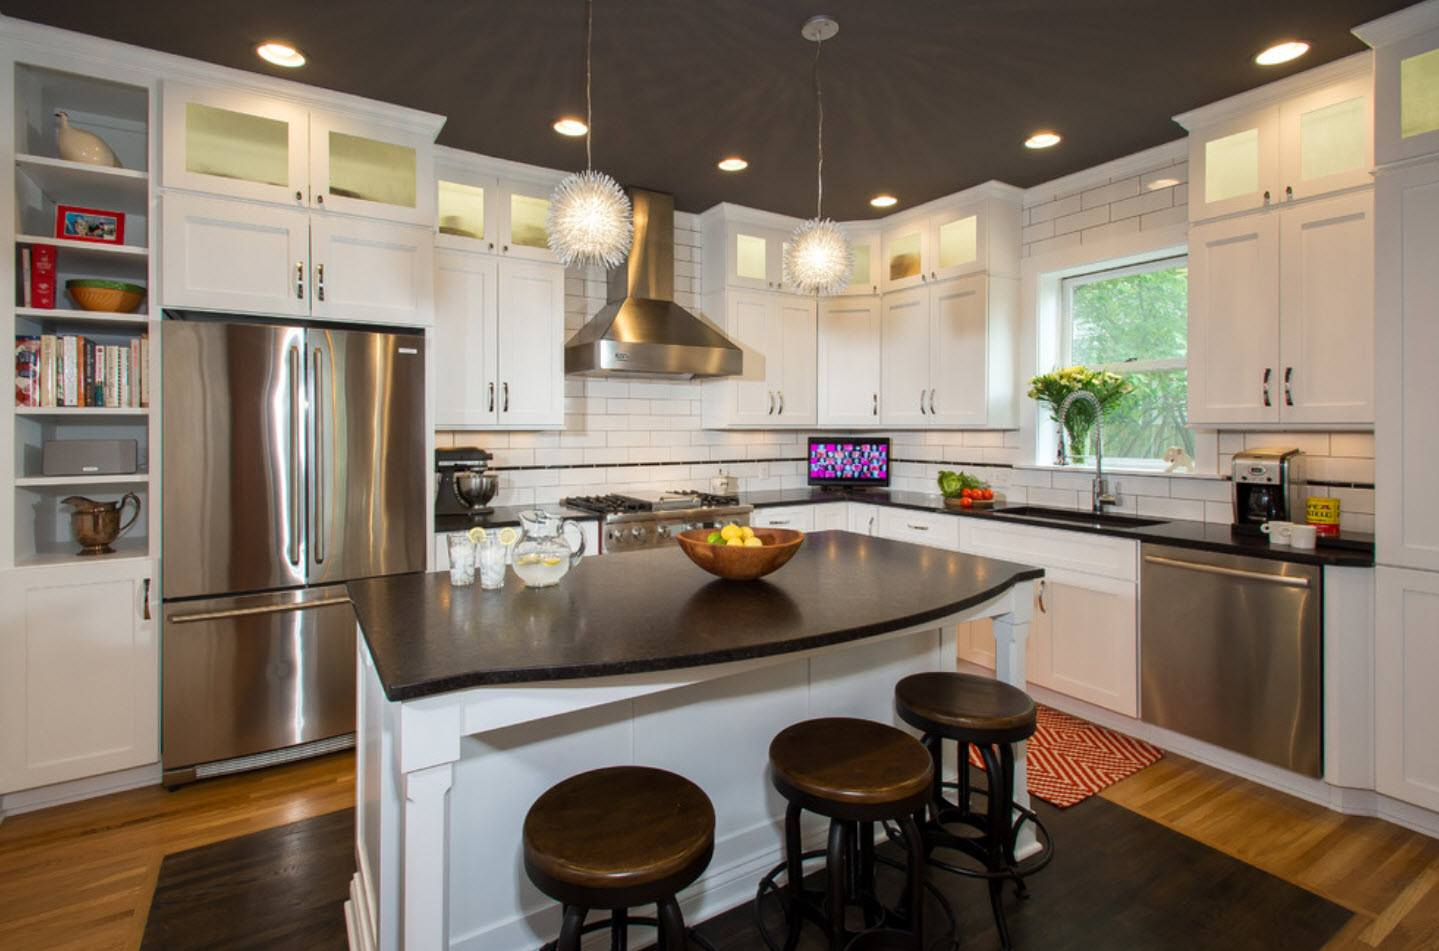 120 Square Feet Kitchen Interior Design Ideas with Photos. Black round chairs in the Classic designed area with dark ceiling